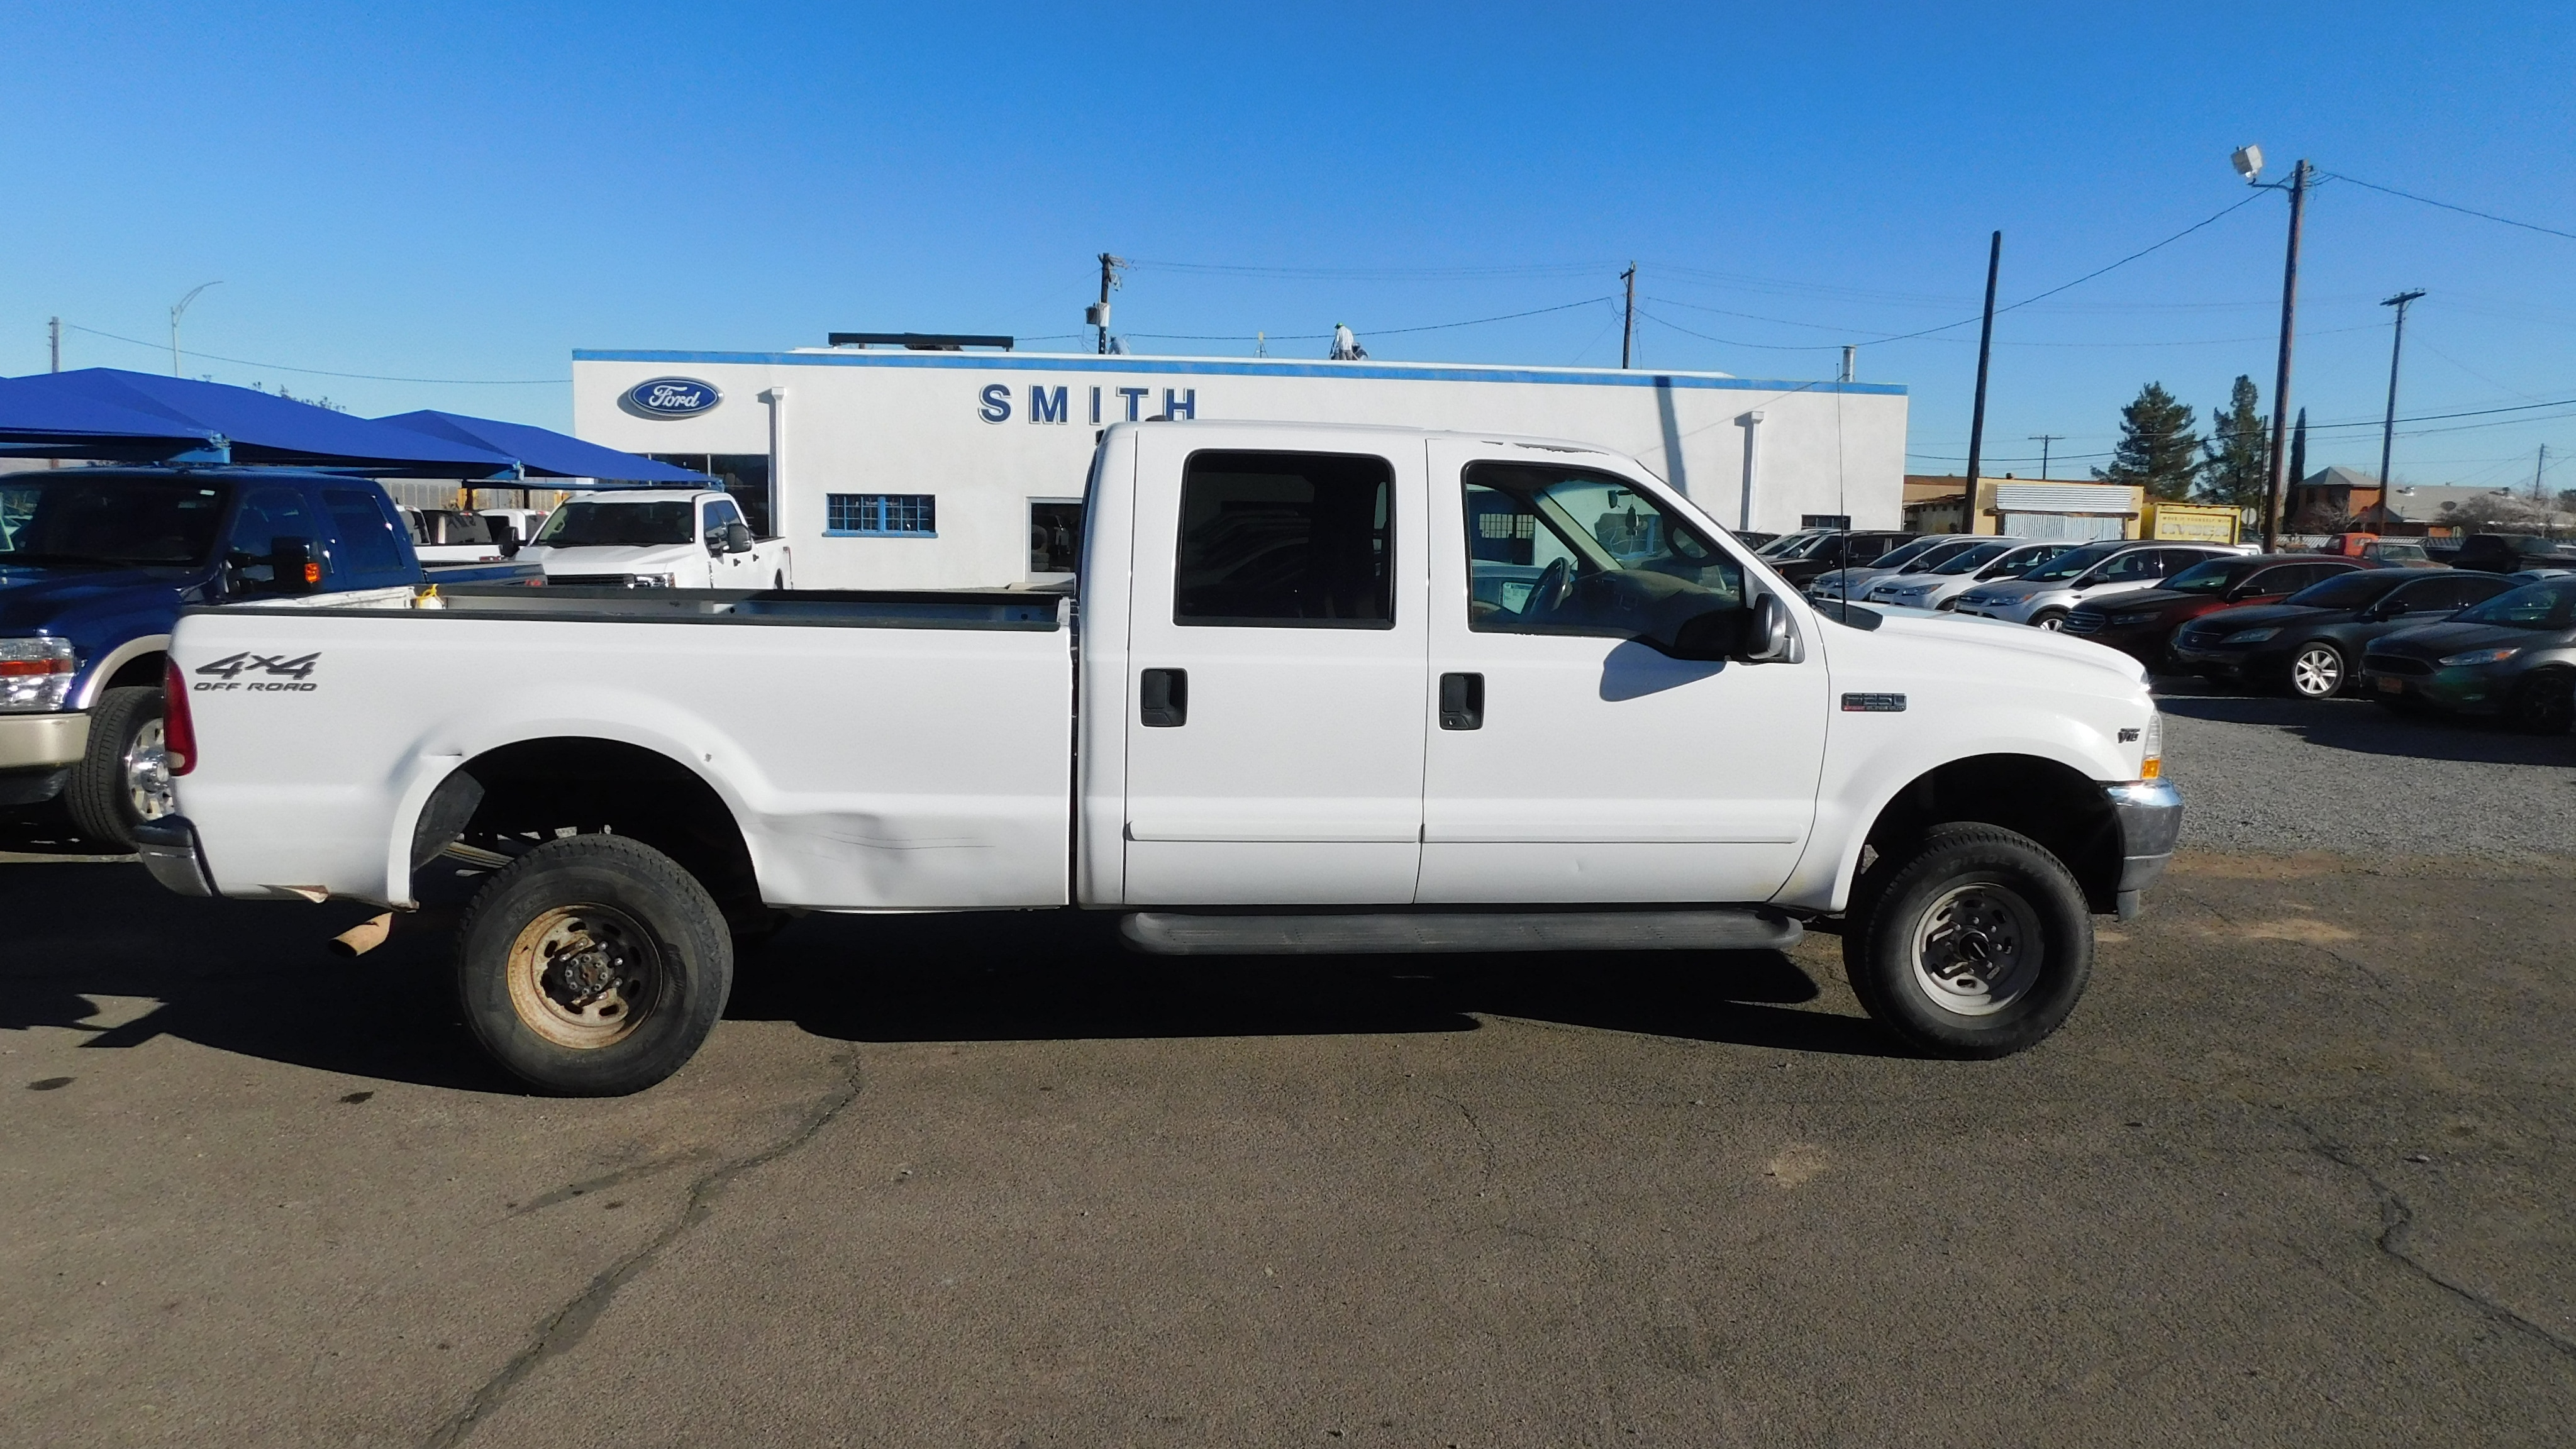 2002 ford v10 xr650r wiring diagram used f 250 for sale at smith vin 1ftnw21s92ec94262 lariat crew cab 20v mpfi sohc